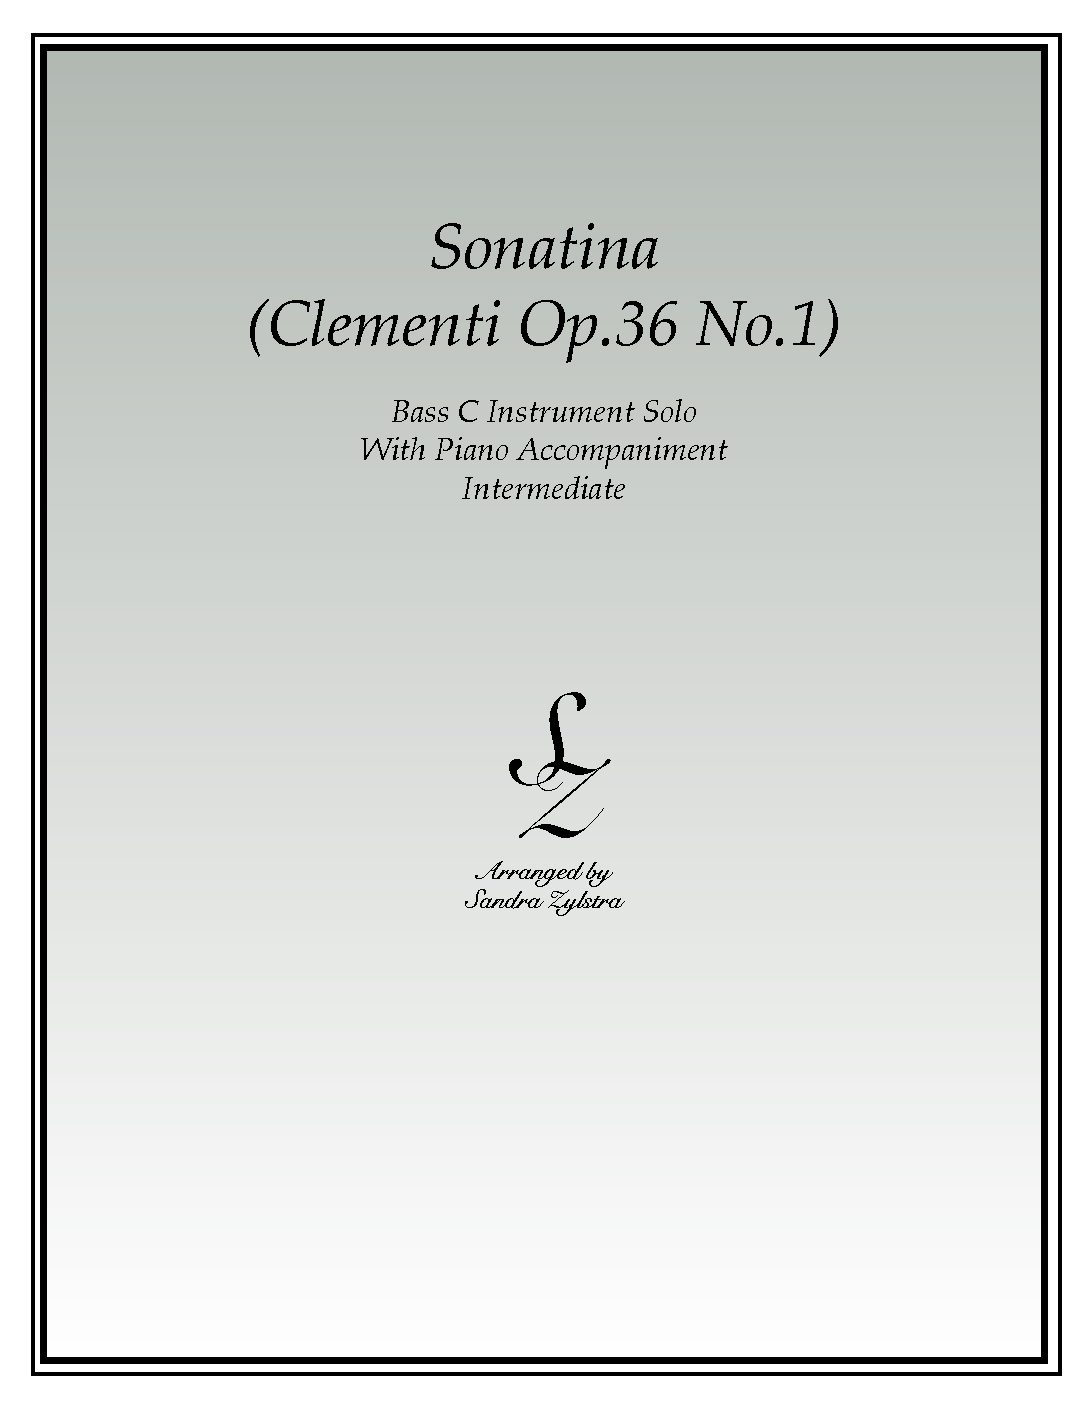 Sonatina-Clementi (Op. 36, No. 1) -Bass C Instrument Solo